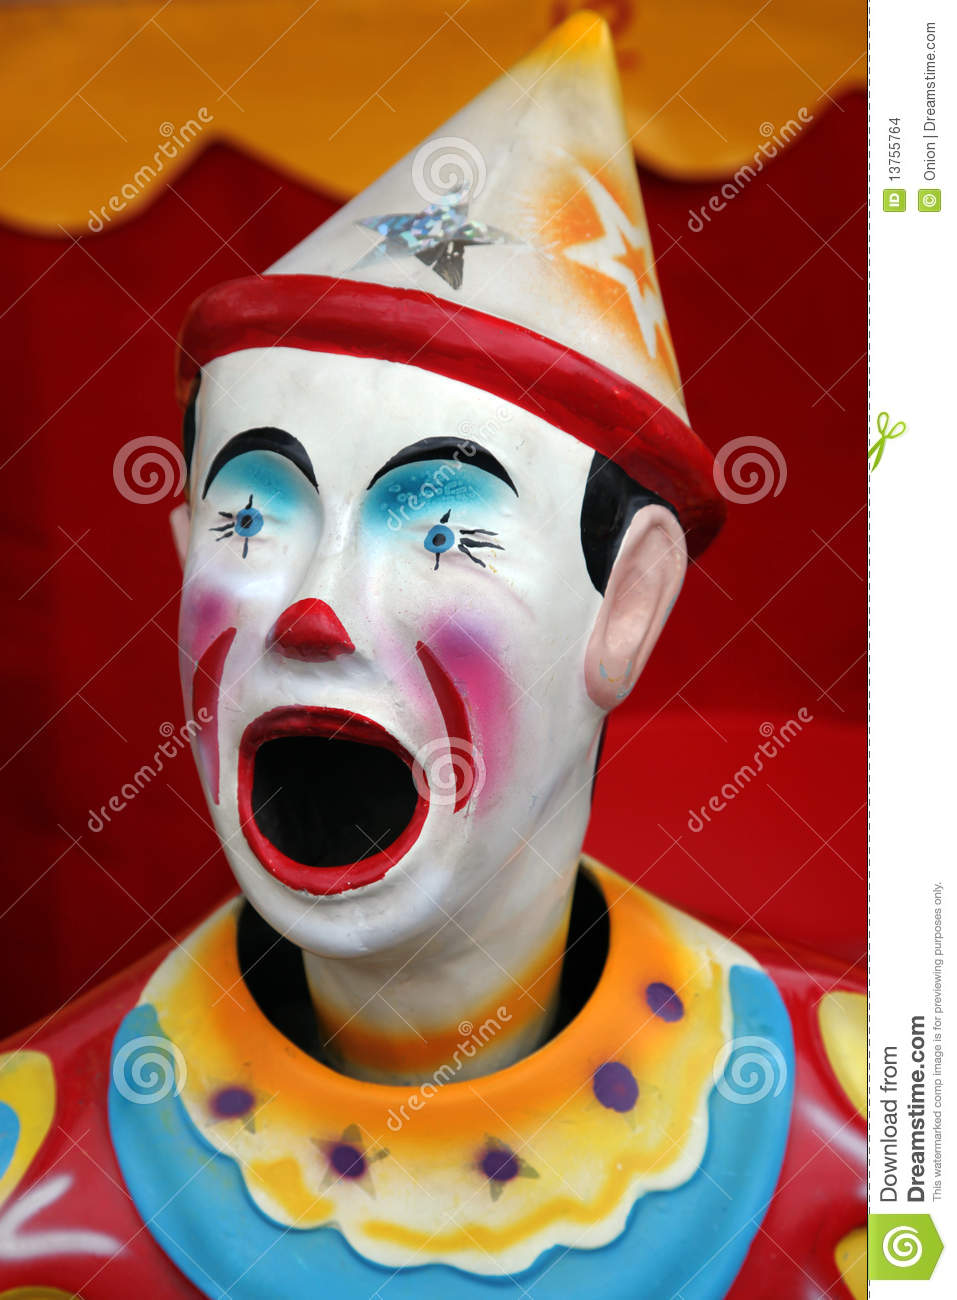 More similar stock images of ` Colorful carnival clown `